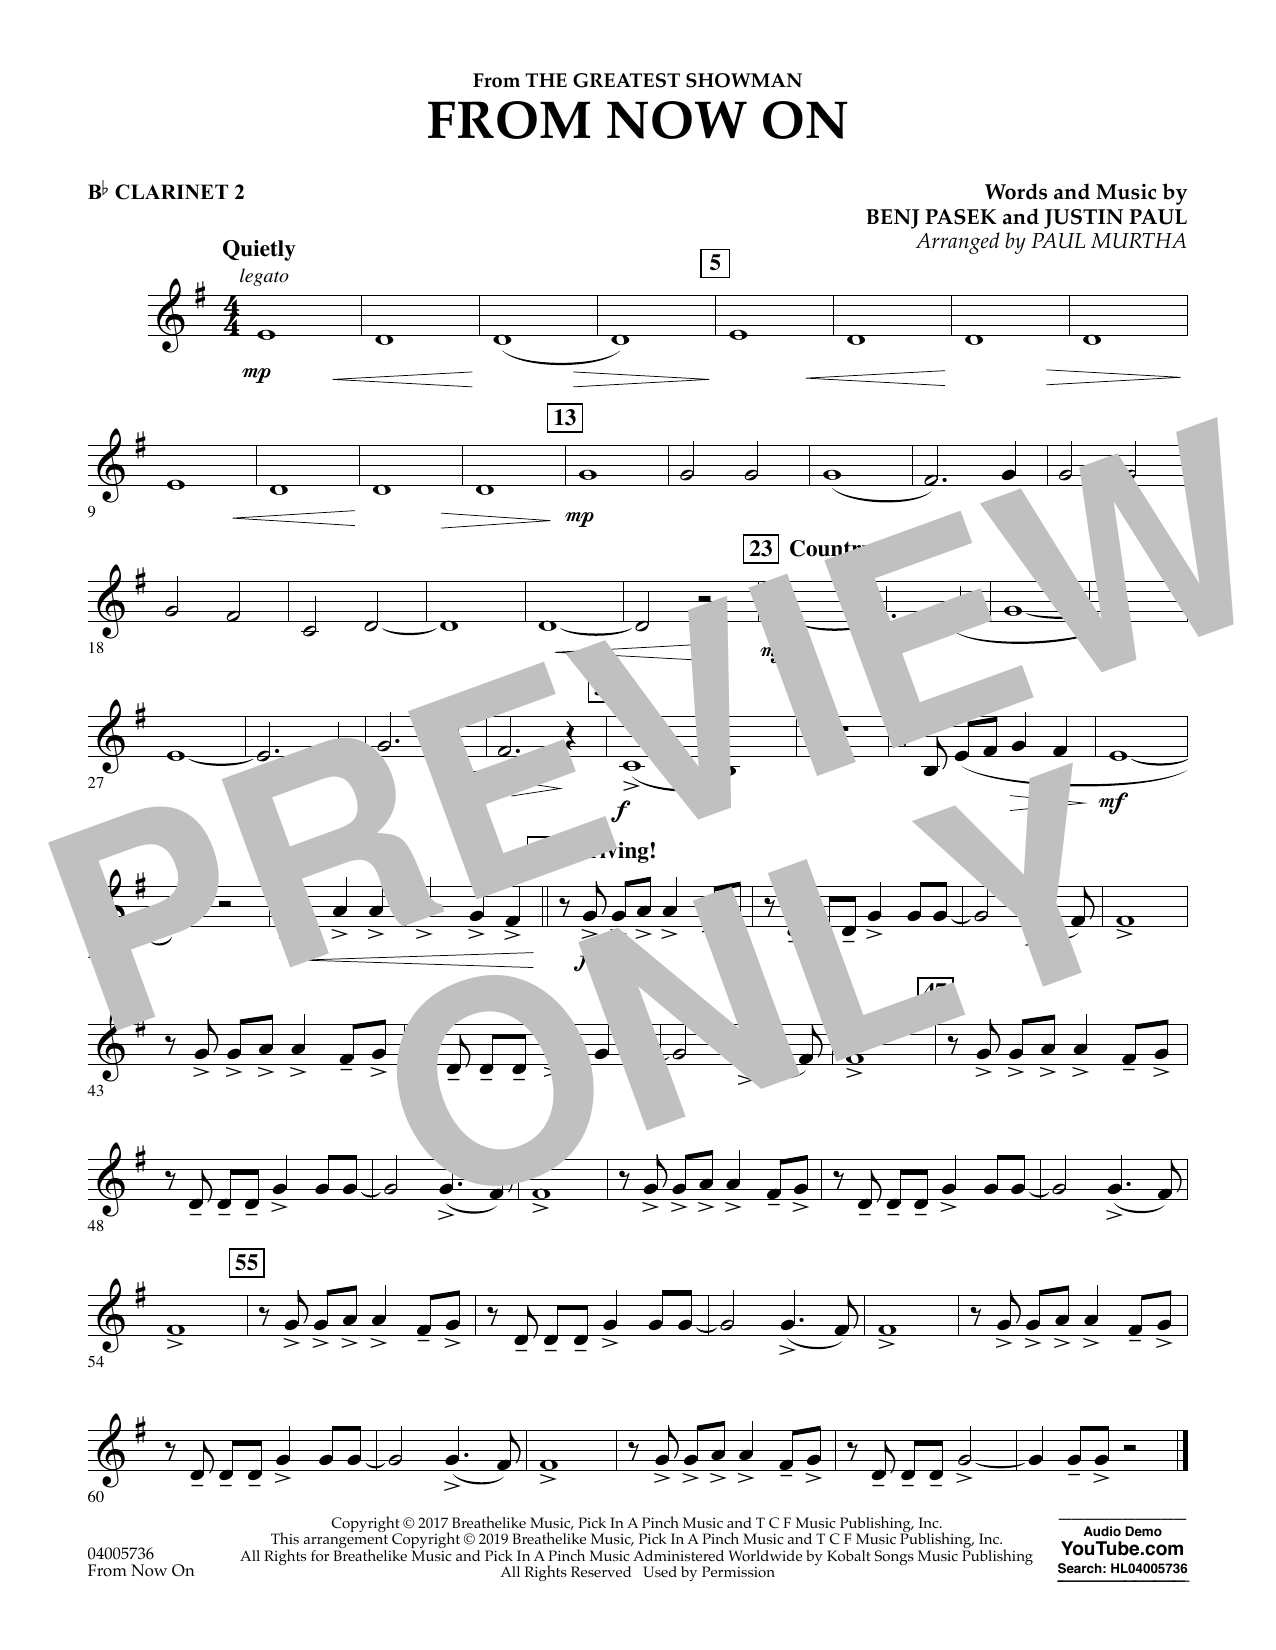 From Now On (from The Greatest Showman) (arr. Paul Murtha) - Bb Clarinet 2 (Concert Band)